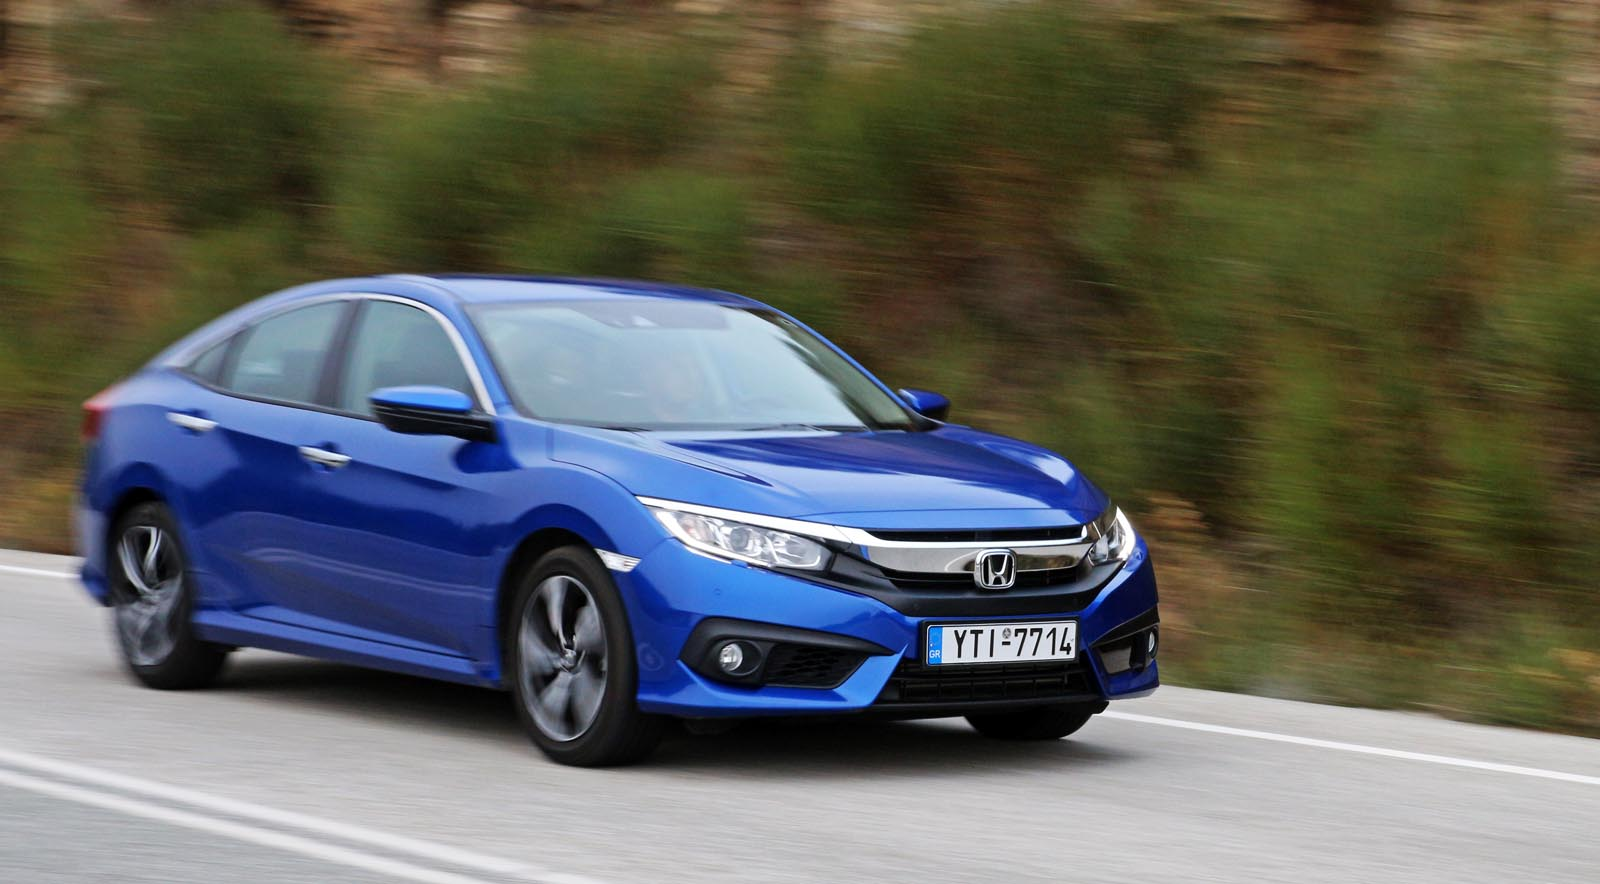 Photo of Honda Civic 4D 1.5 VTEC Turbo [test drive]